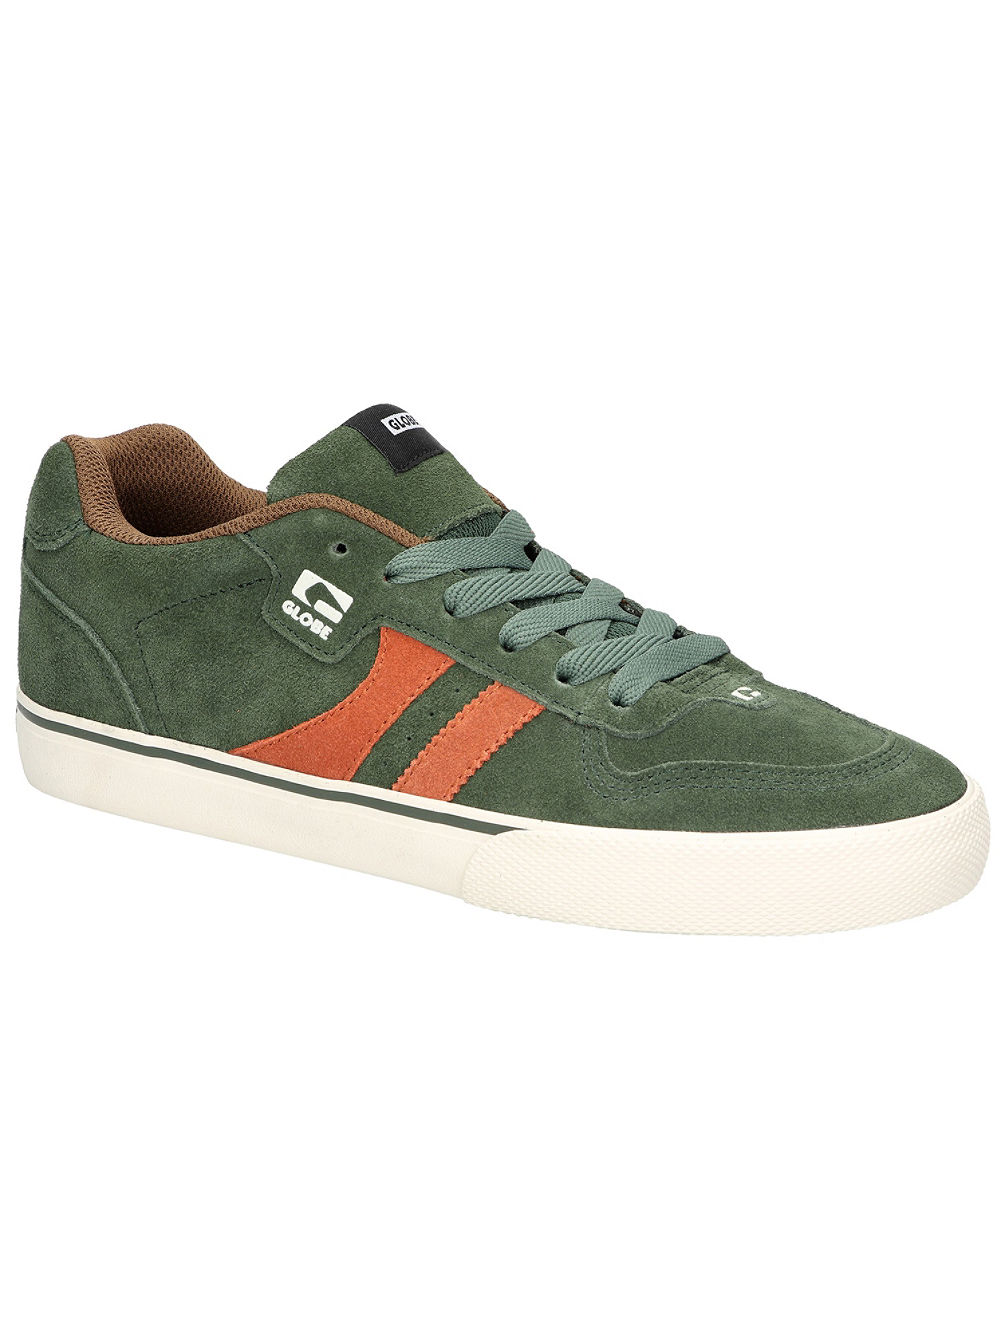 Encore-2 Zapatillas de skate